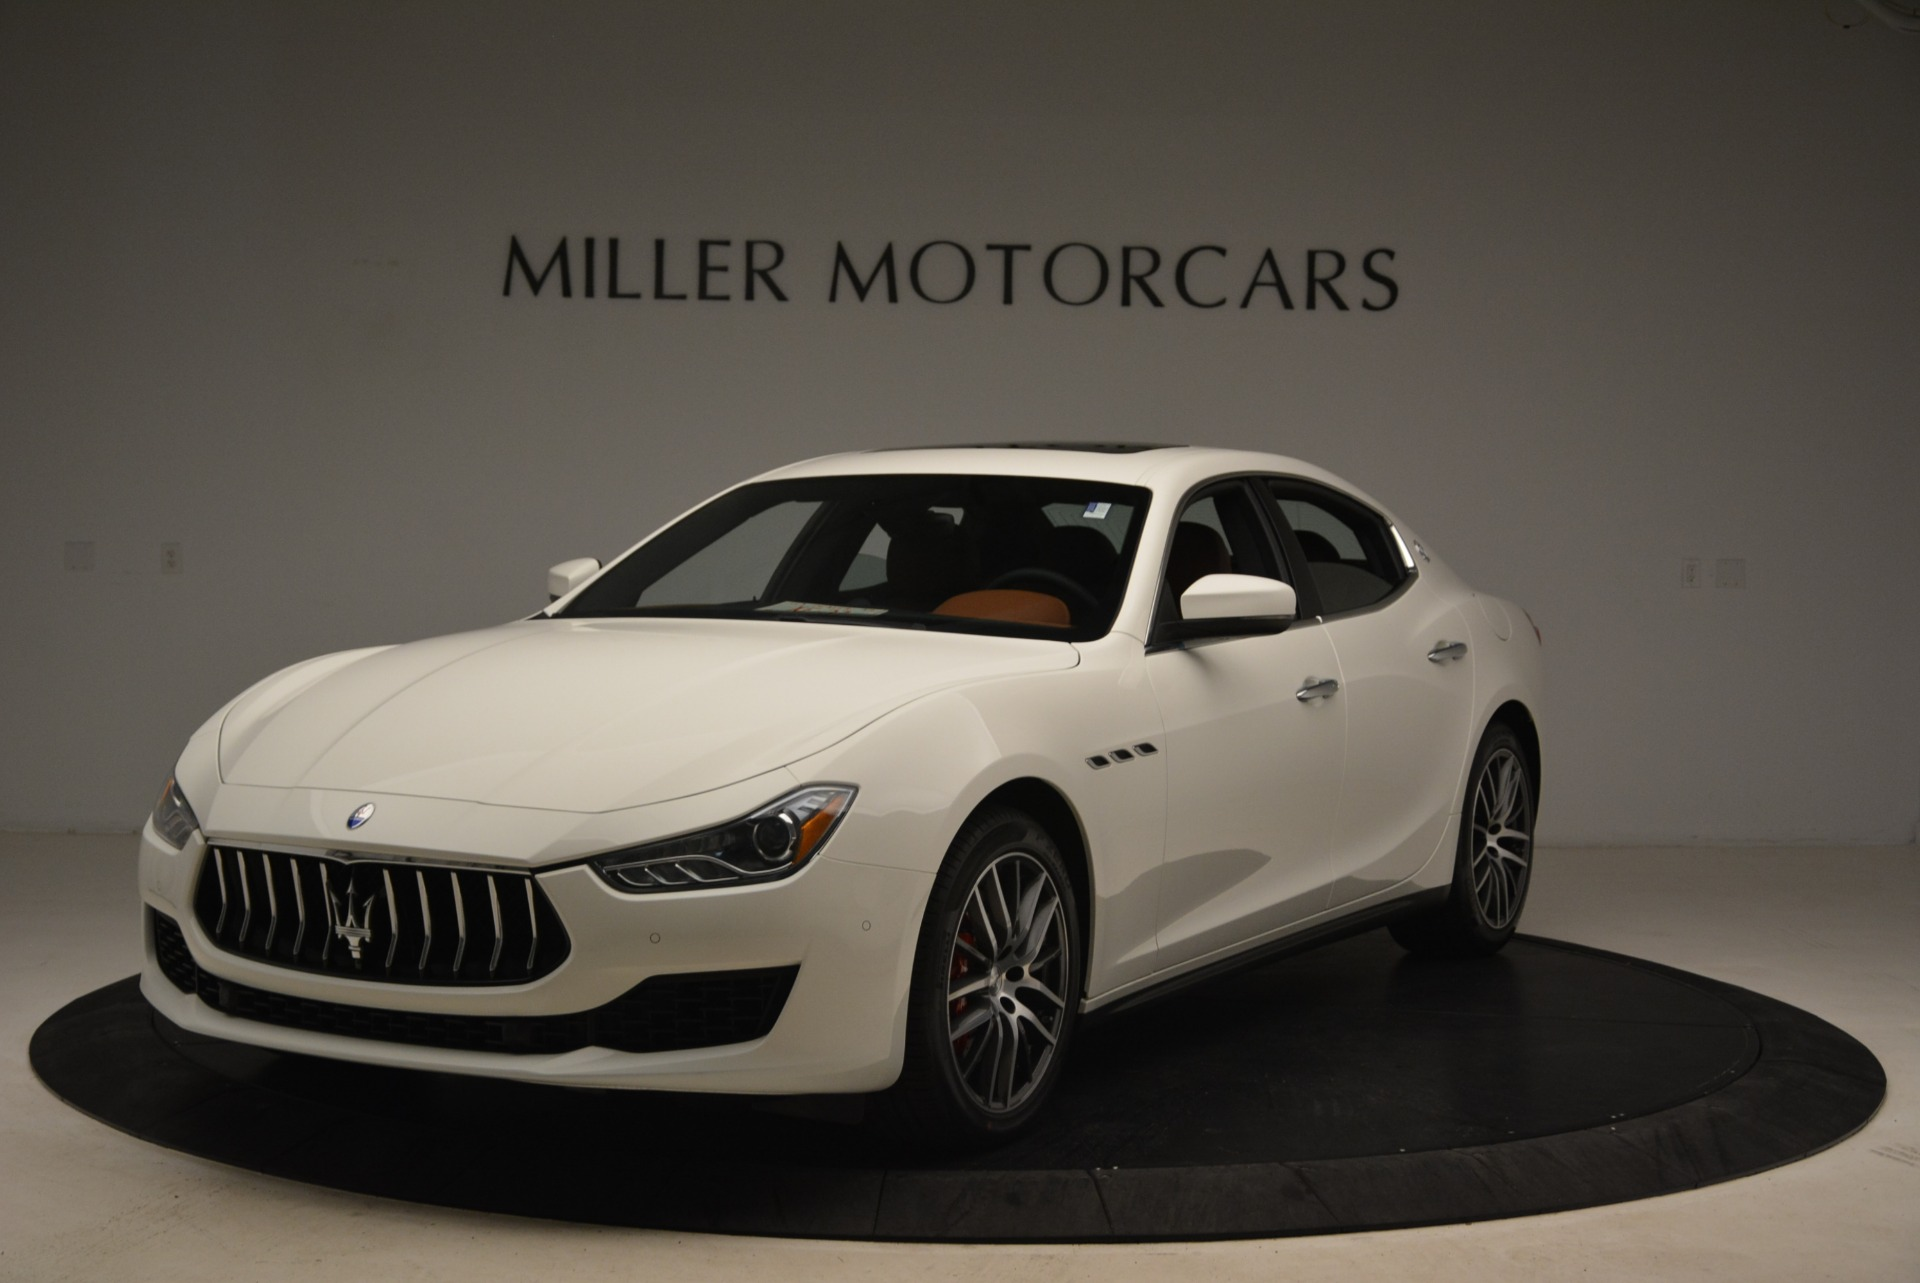 New 2018 Maserati Ghibli S Q4 For Sale In Greenwich, CT 1892_main